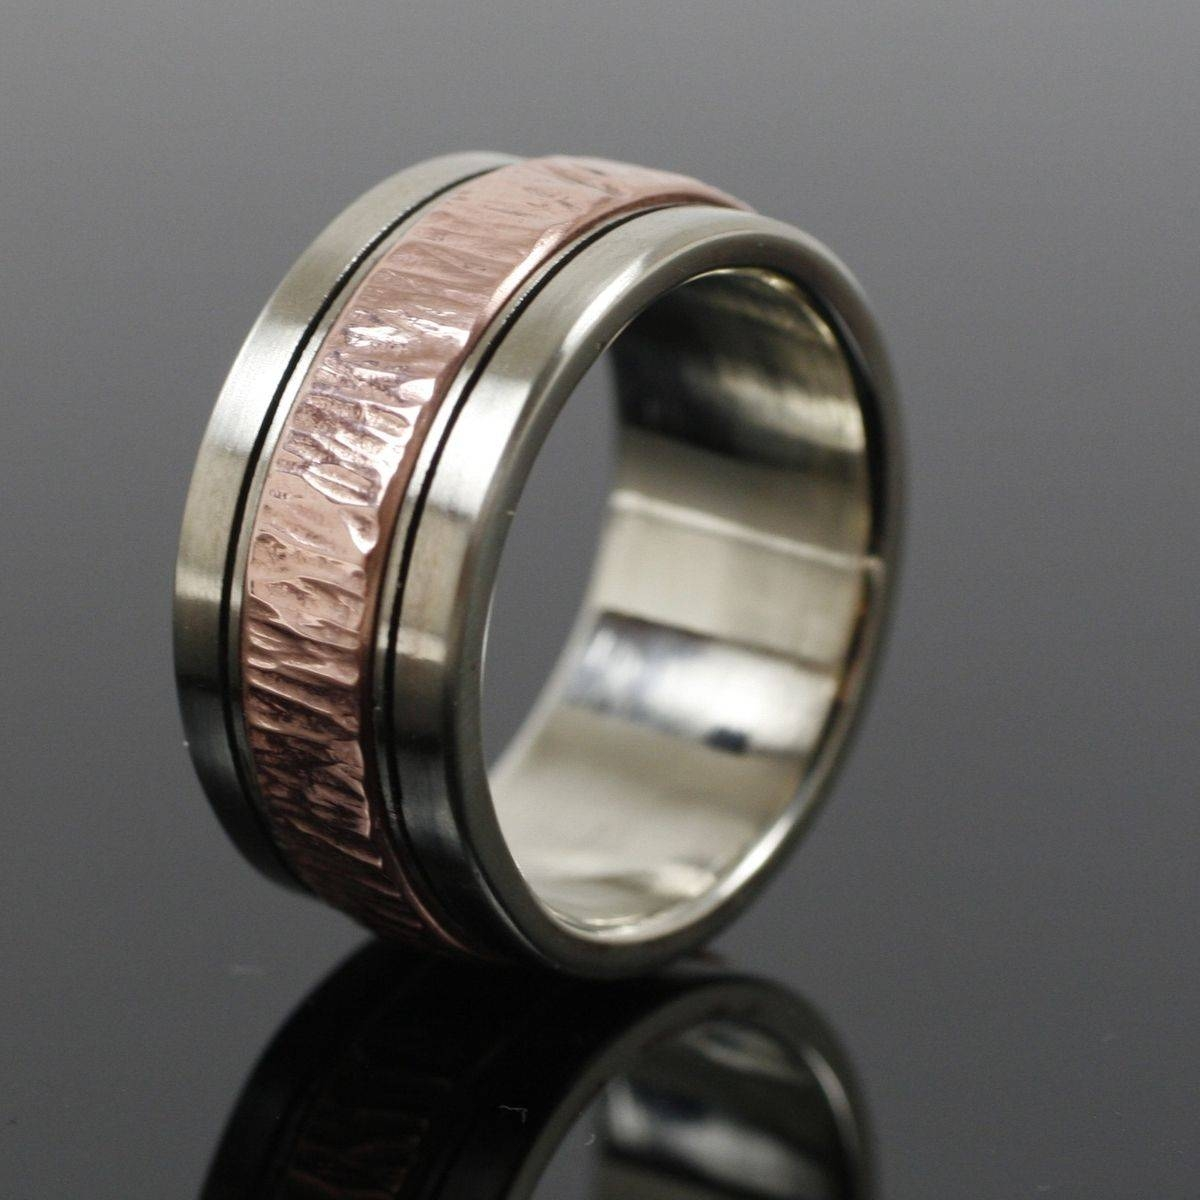 Handmade Wedding Rings | Custommade Intended For Men's Outdoor Wedding Bands (View 8 of 15)